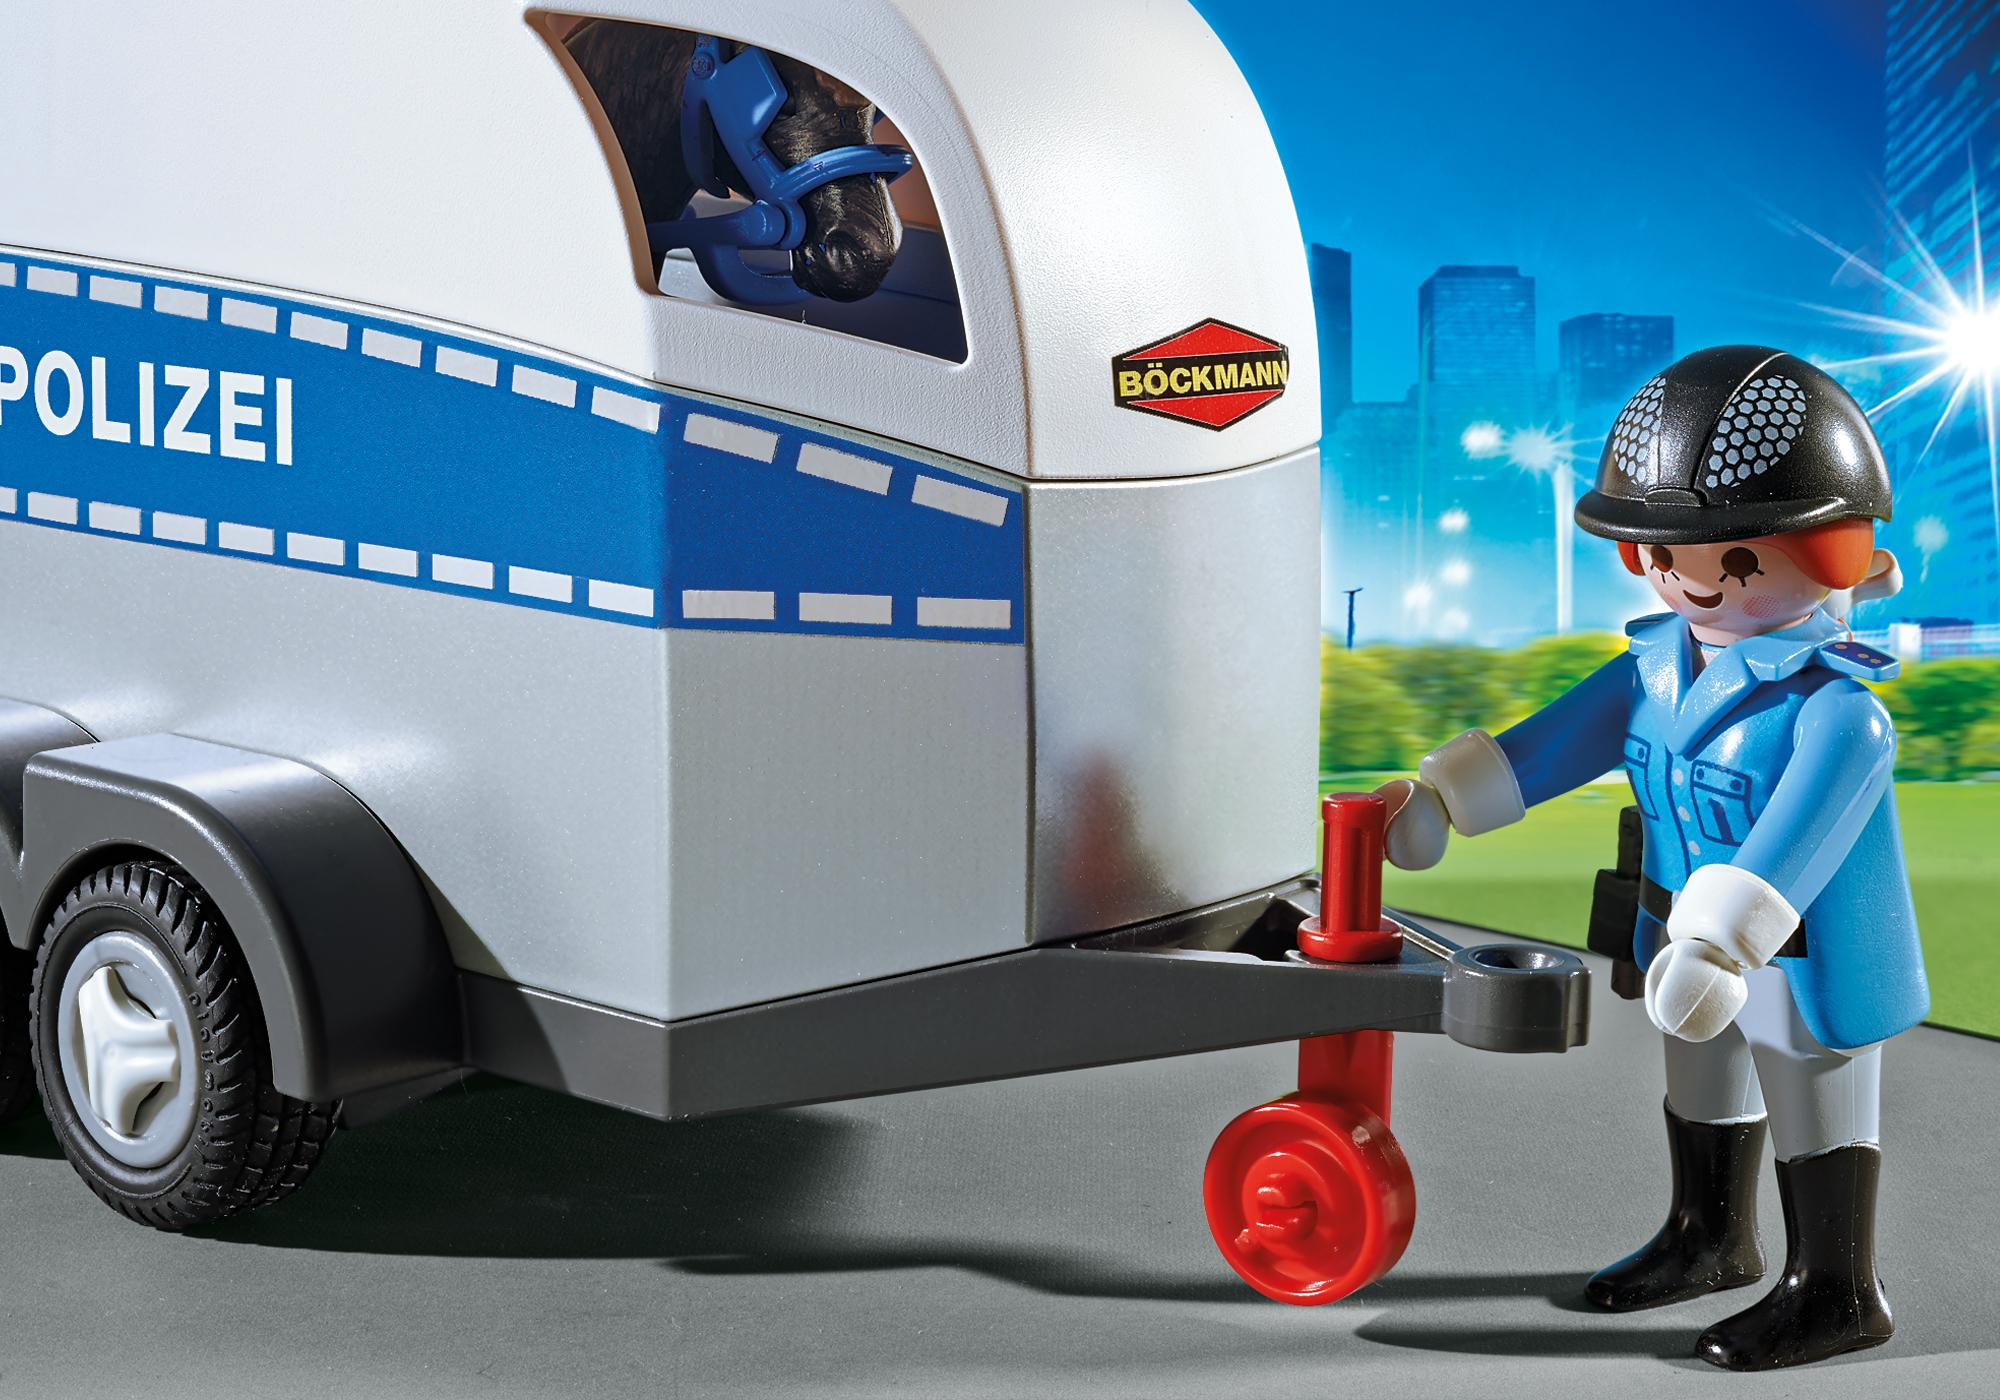 http://media.playmobil.com/i/playmobil/6875_product_extra1